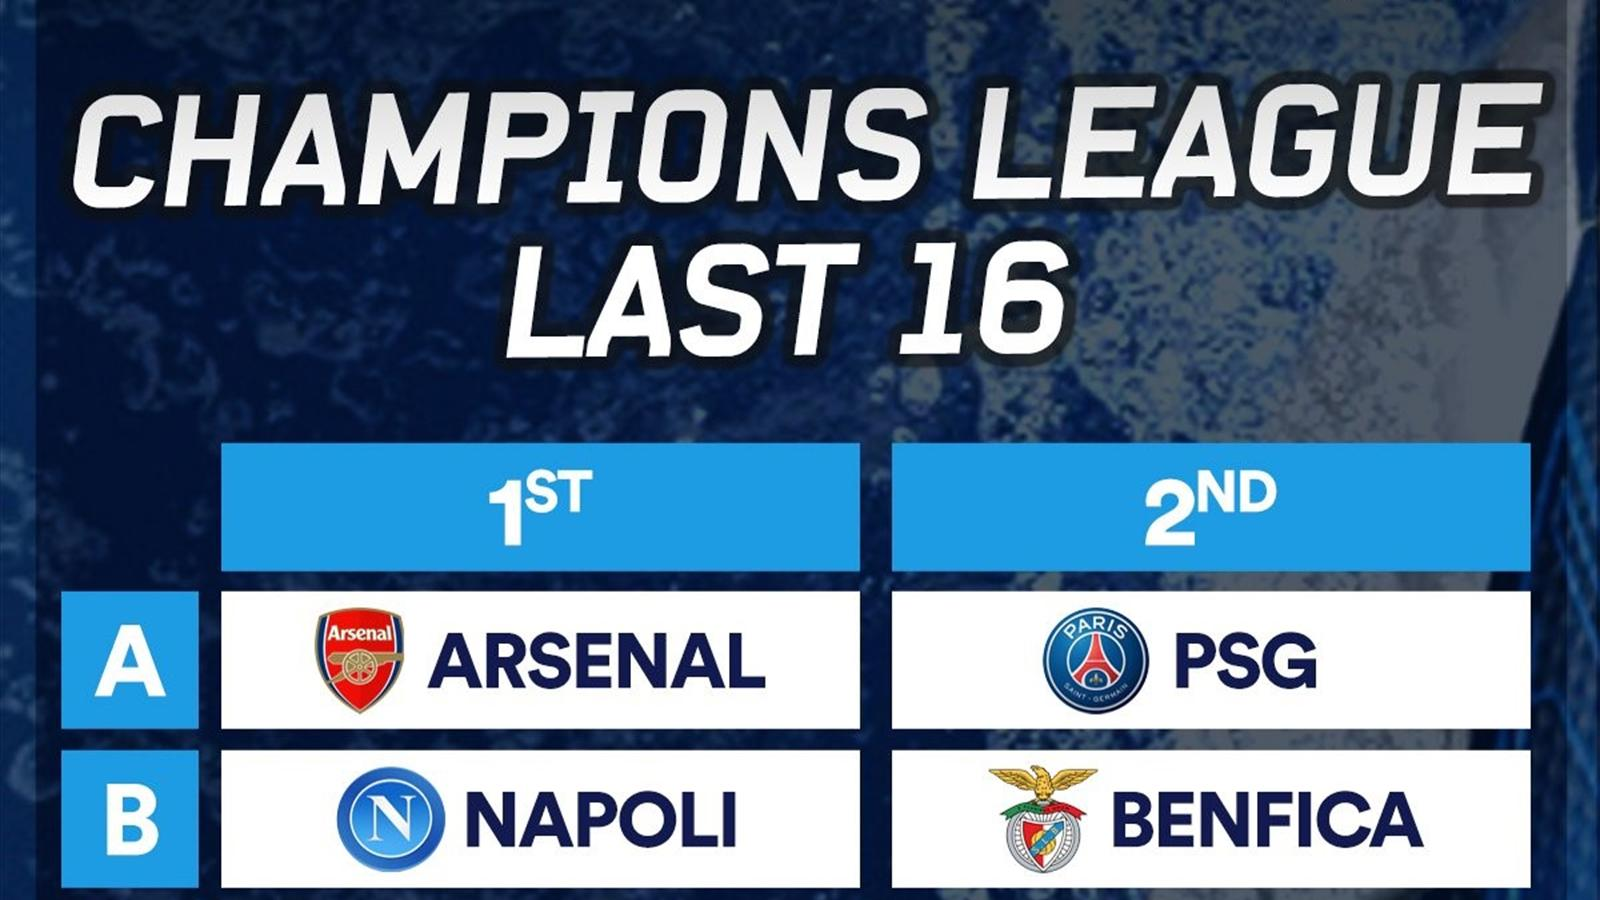 Champions League last 16 draw 2016: When is it? Who can play who? Is it on TV? Final group ...